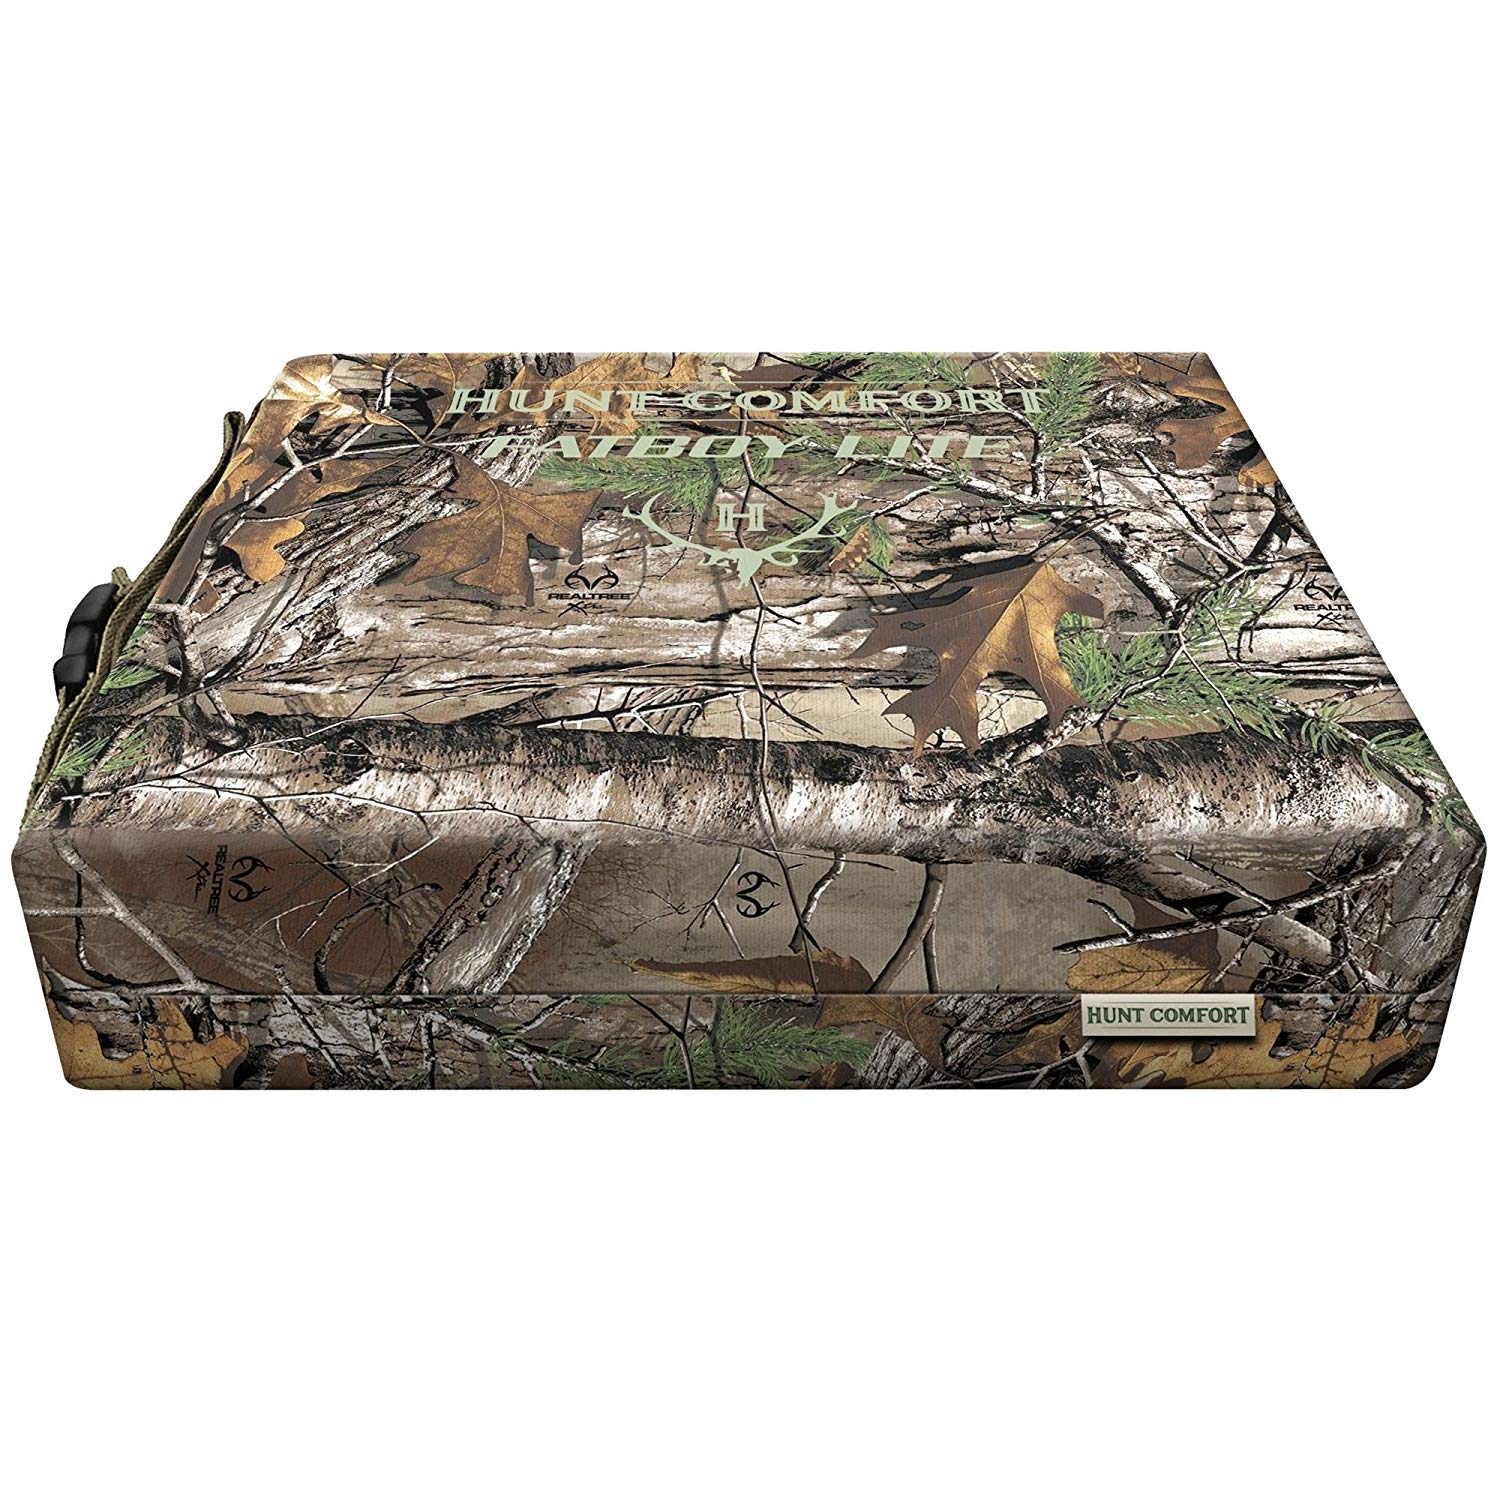 Deer Hunter's Gift Guide